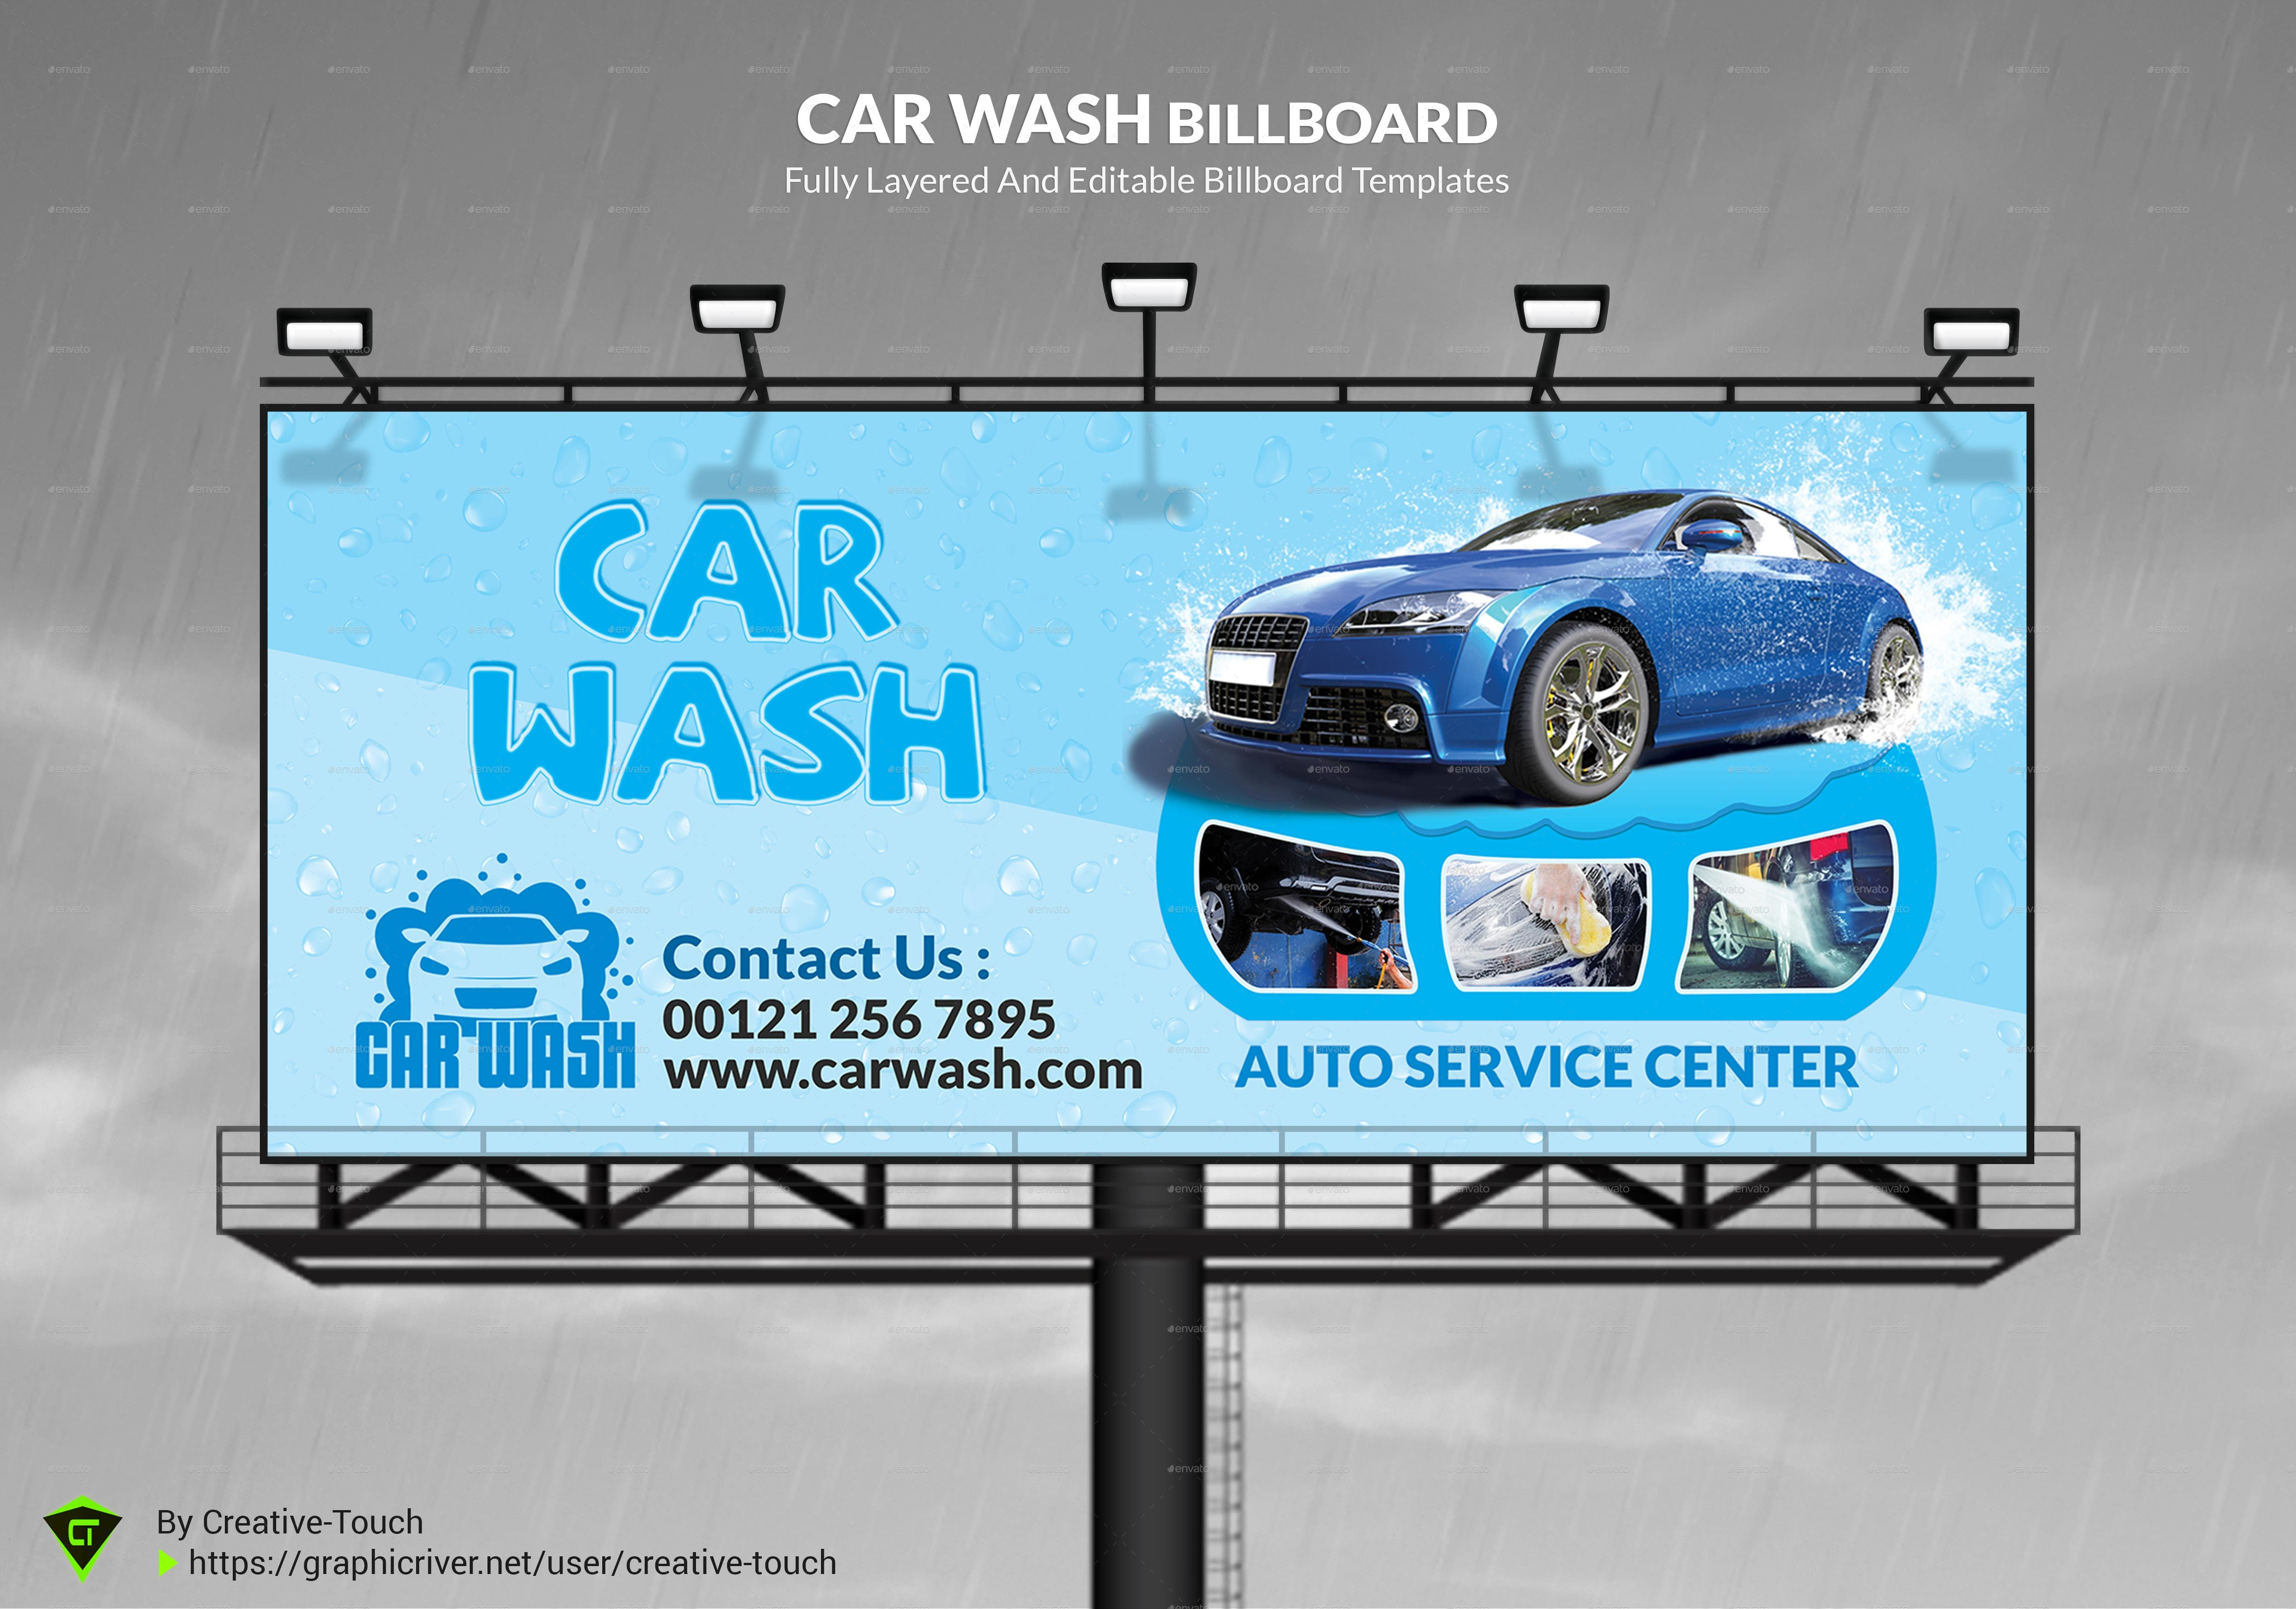 Smart Car Wash >> Car Wash Advertising Bundle Vol.2 by Creative-Touch | GraphicRiver